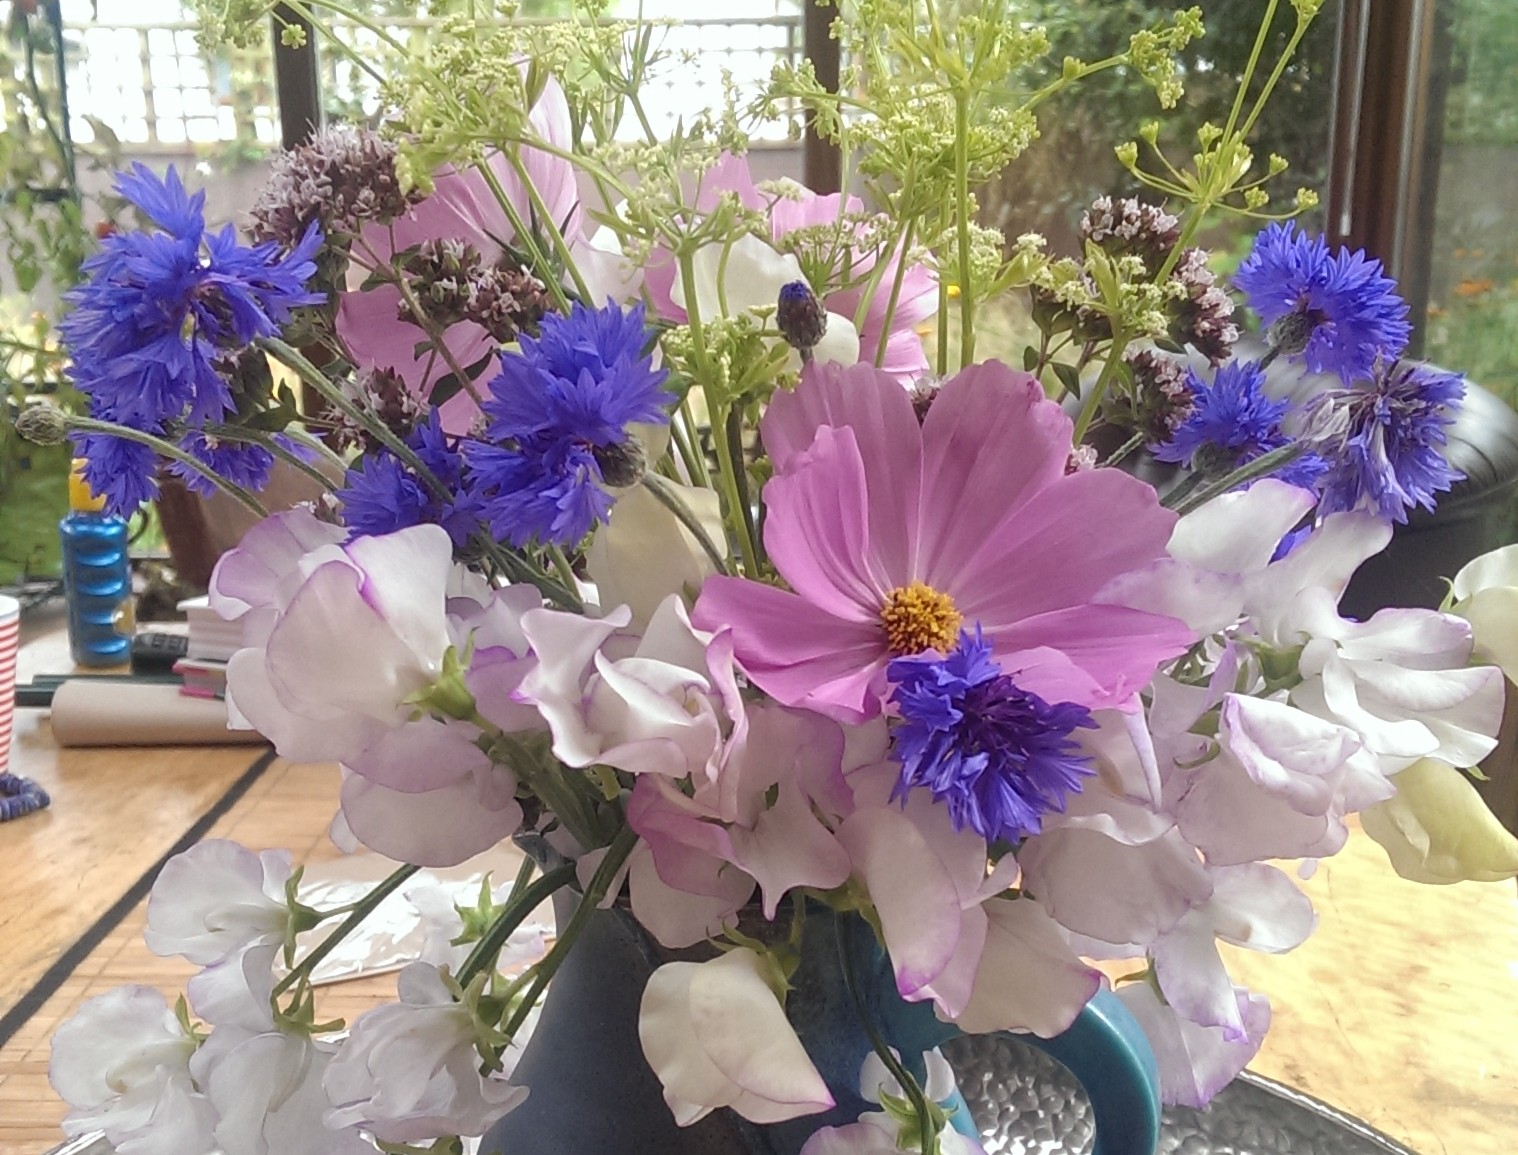 Flowers from the veg patch